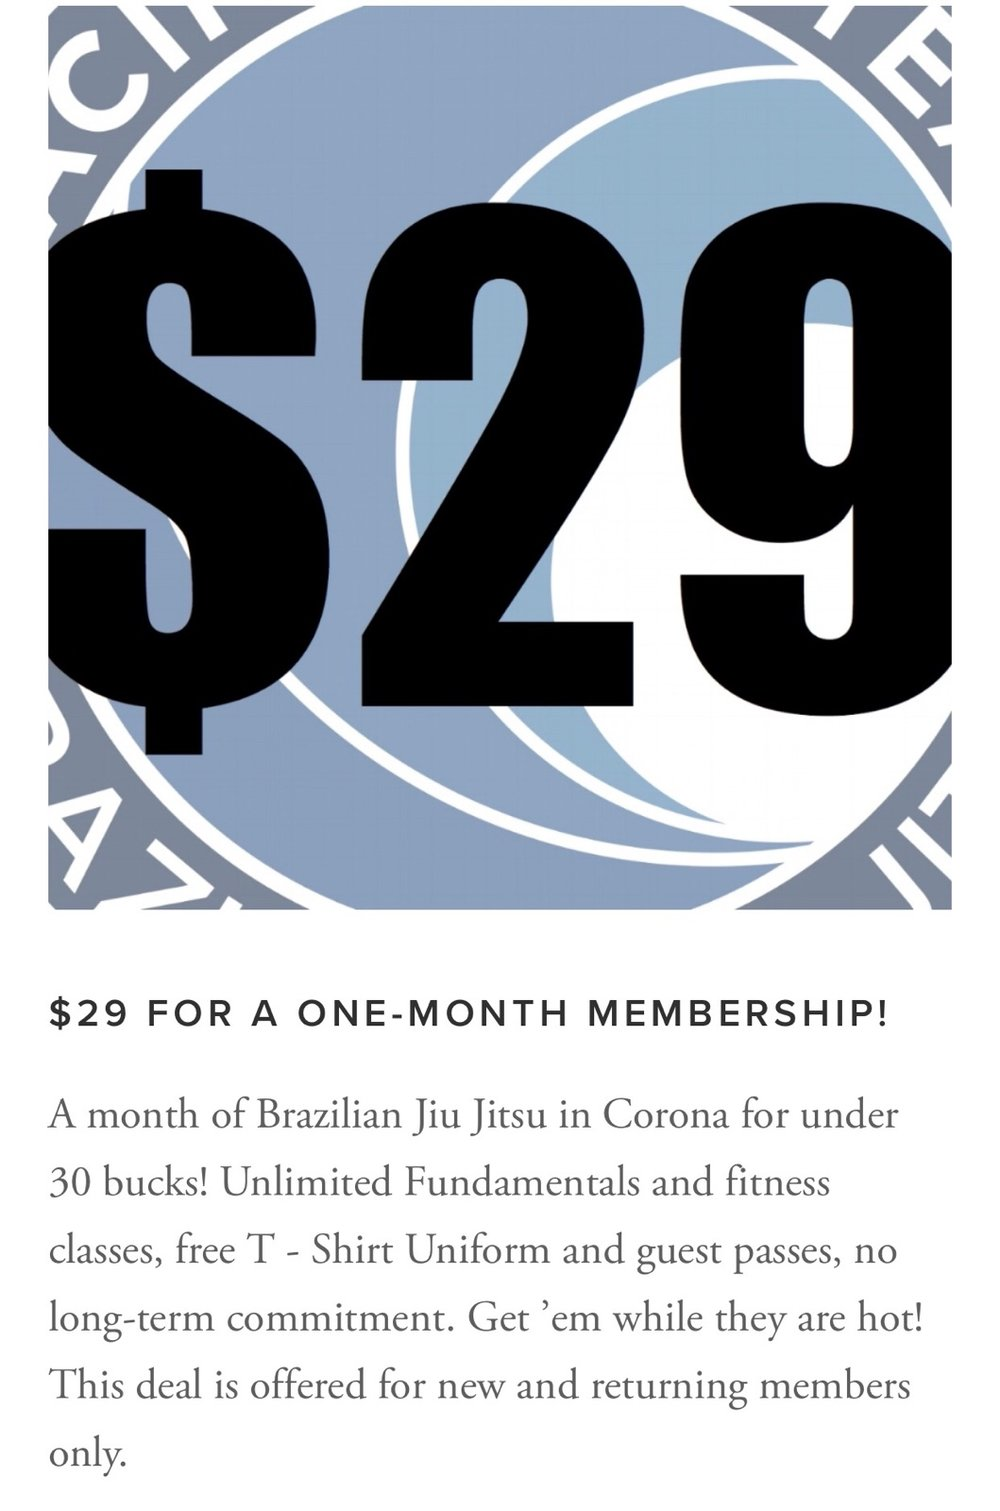 Check out all the deals on Membership at  https://www.jiujitsucorona.com/deals